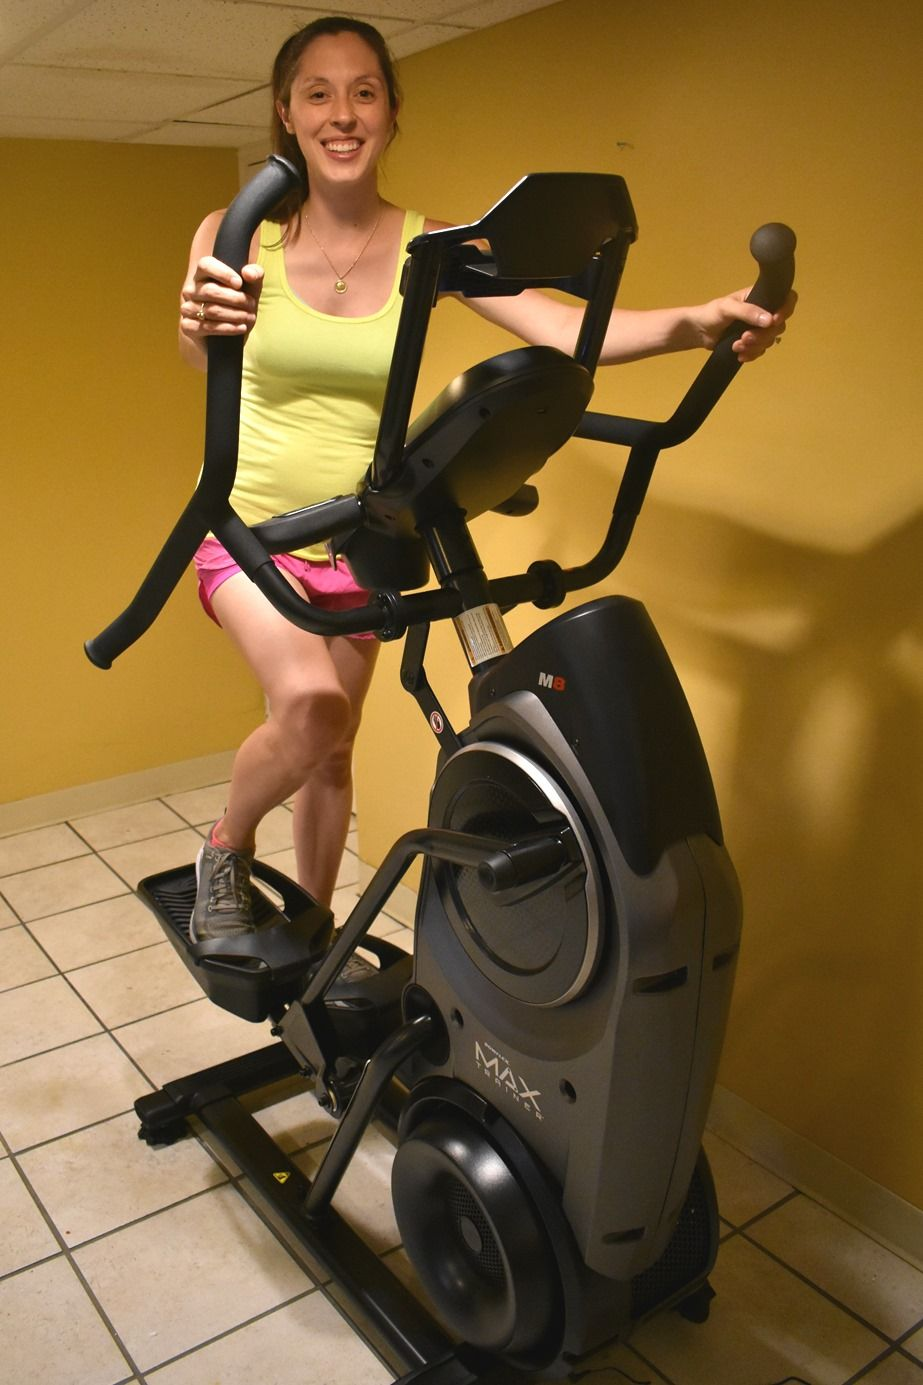 My Plan For Getting Back Into Fitness Bowflex Max Trainer